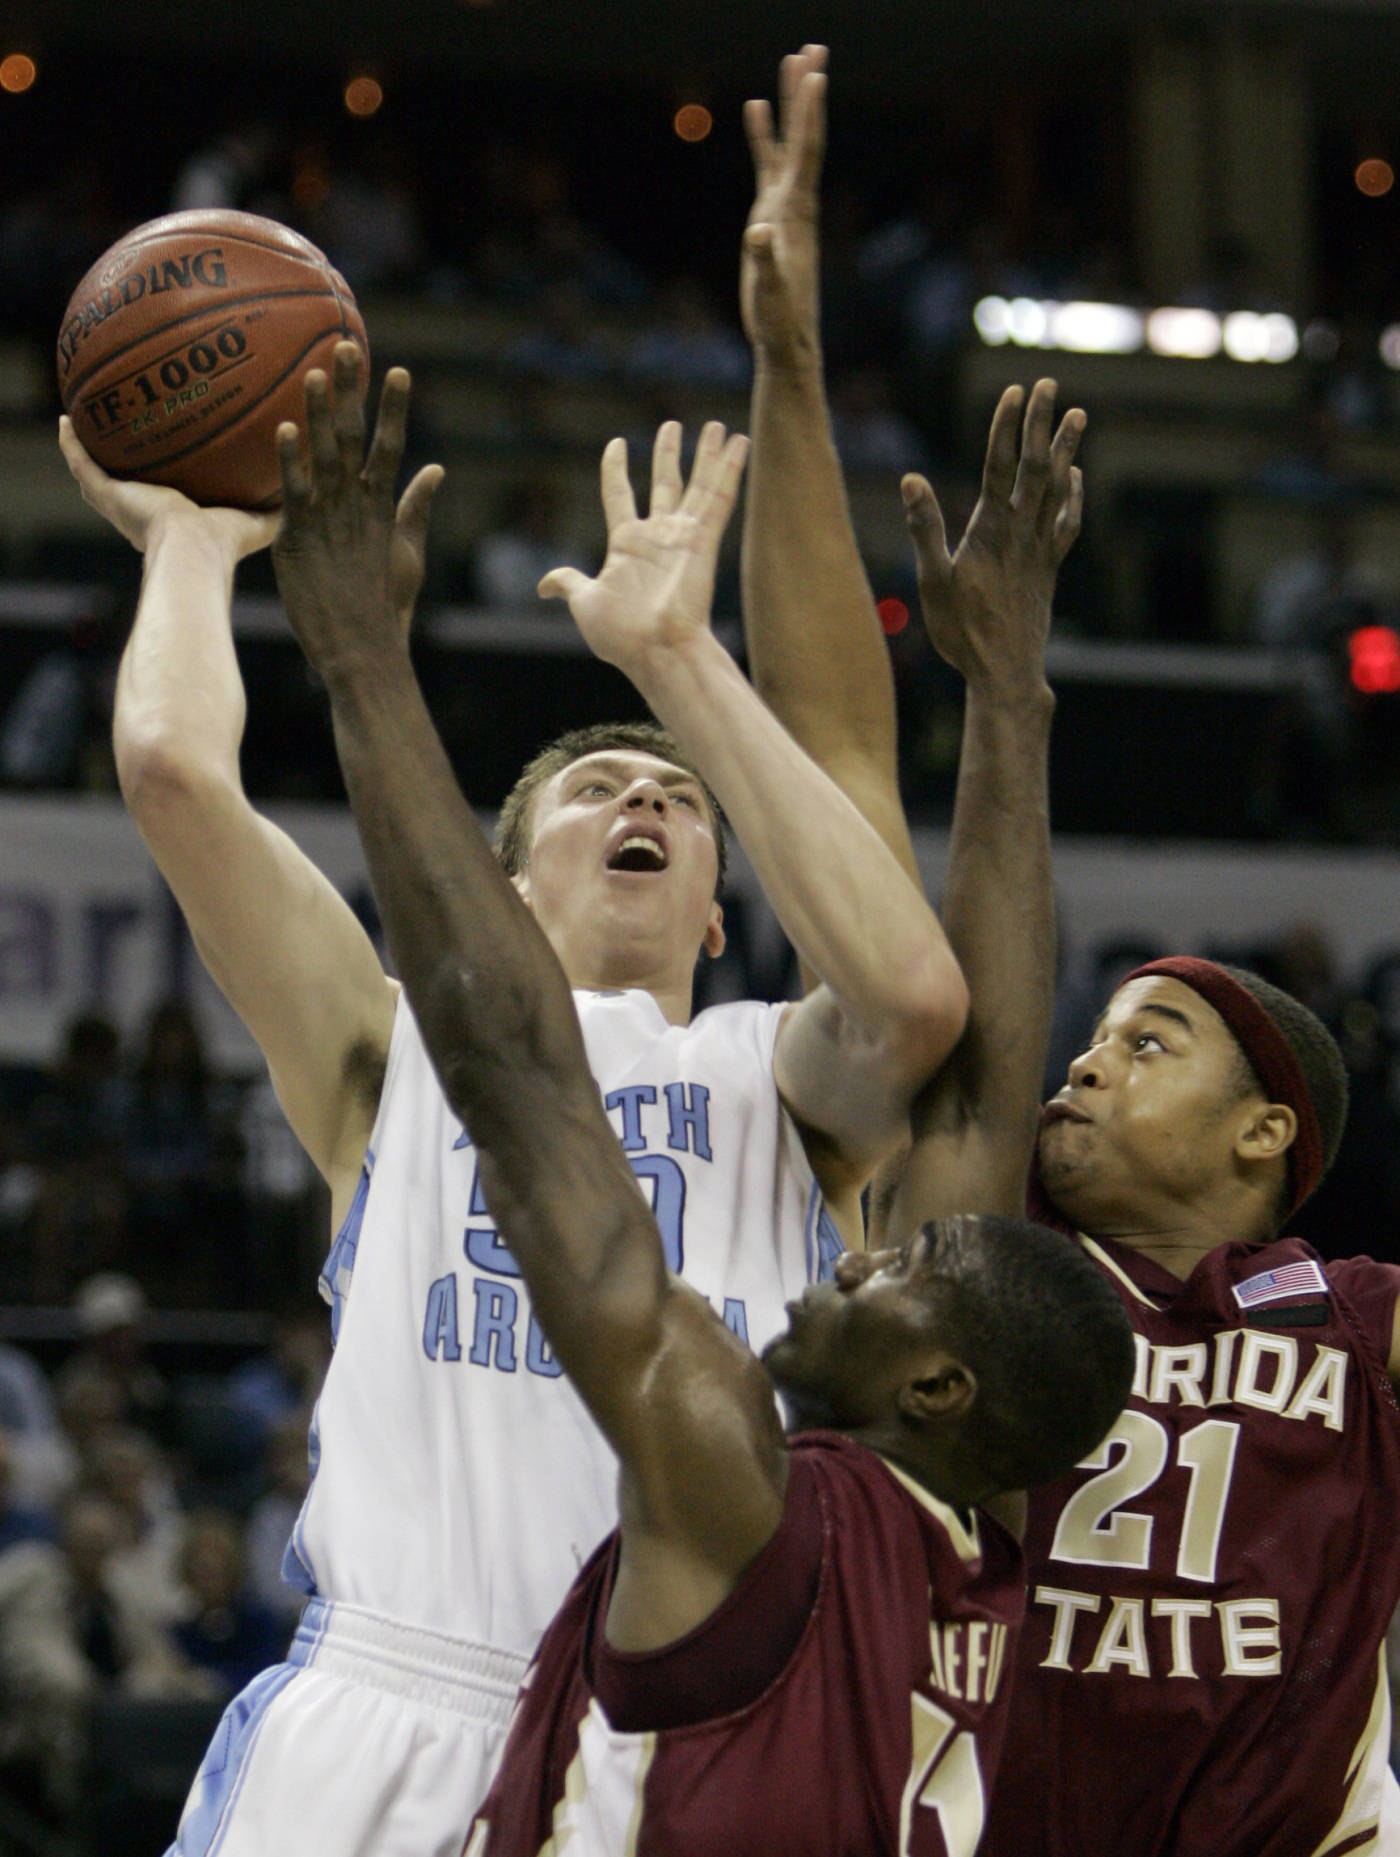 North Carolina's Tyler Hansbrough shoots over a doubleteam by Uche Echefu, center, and Julian Vaughn in the first half. (AP Photo/Gerry Broome)